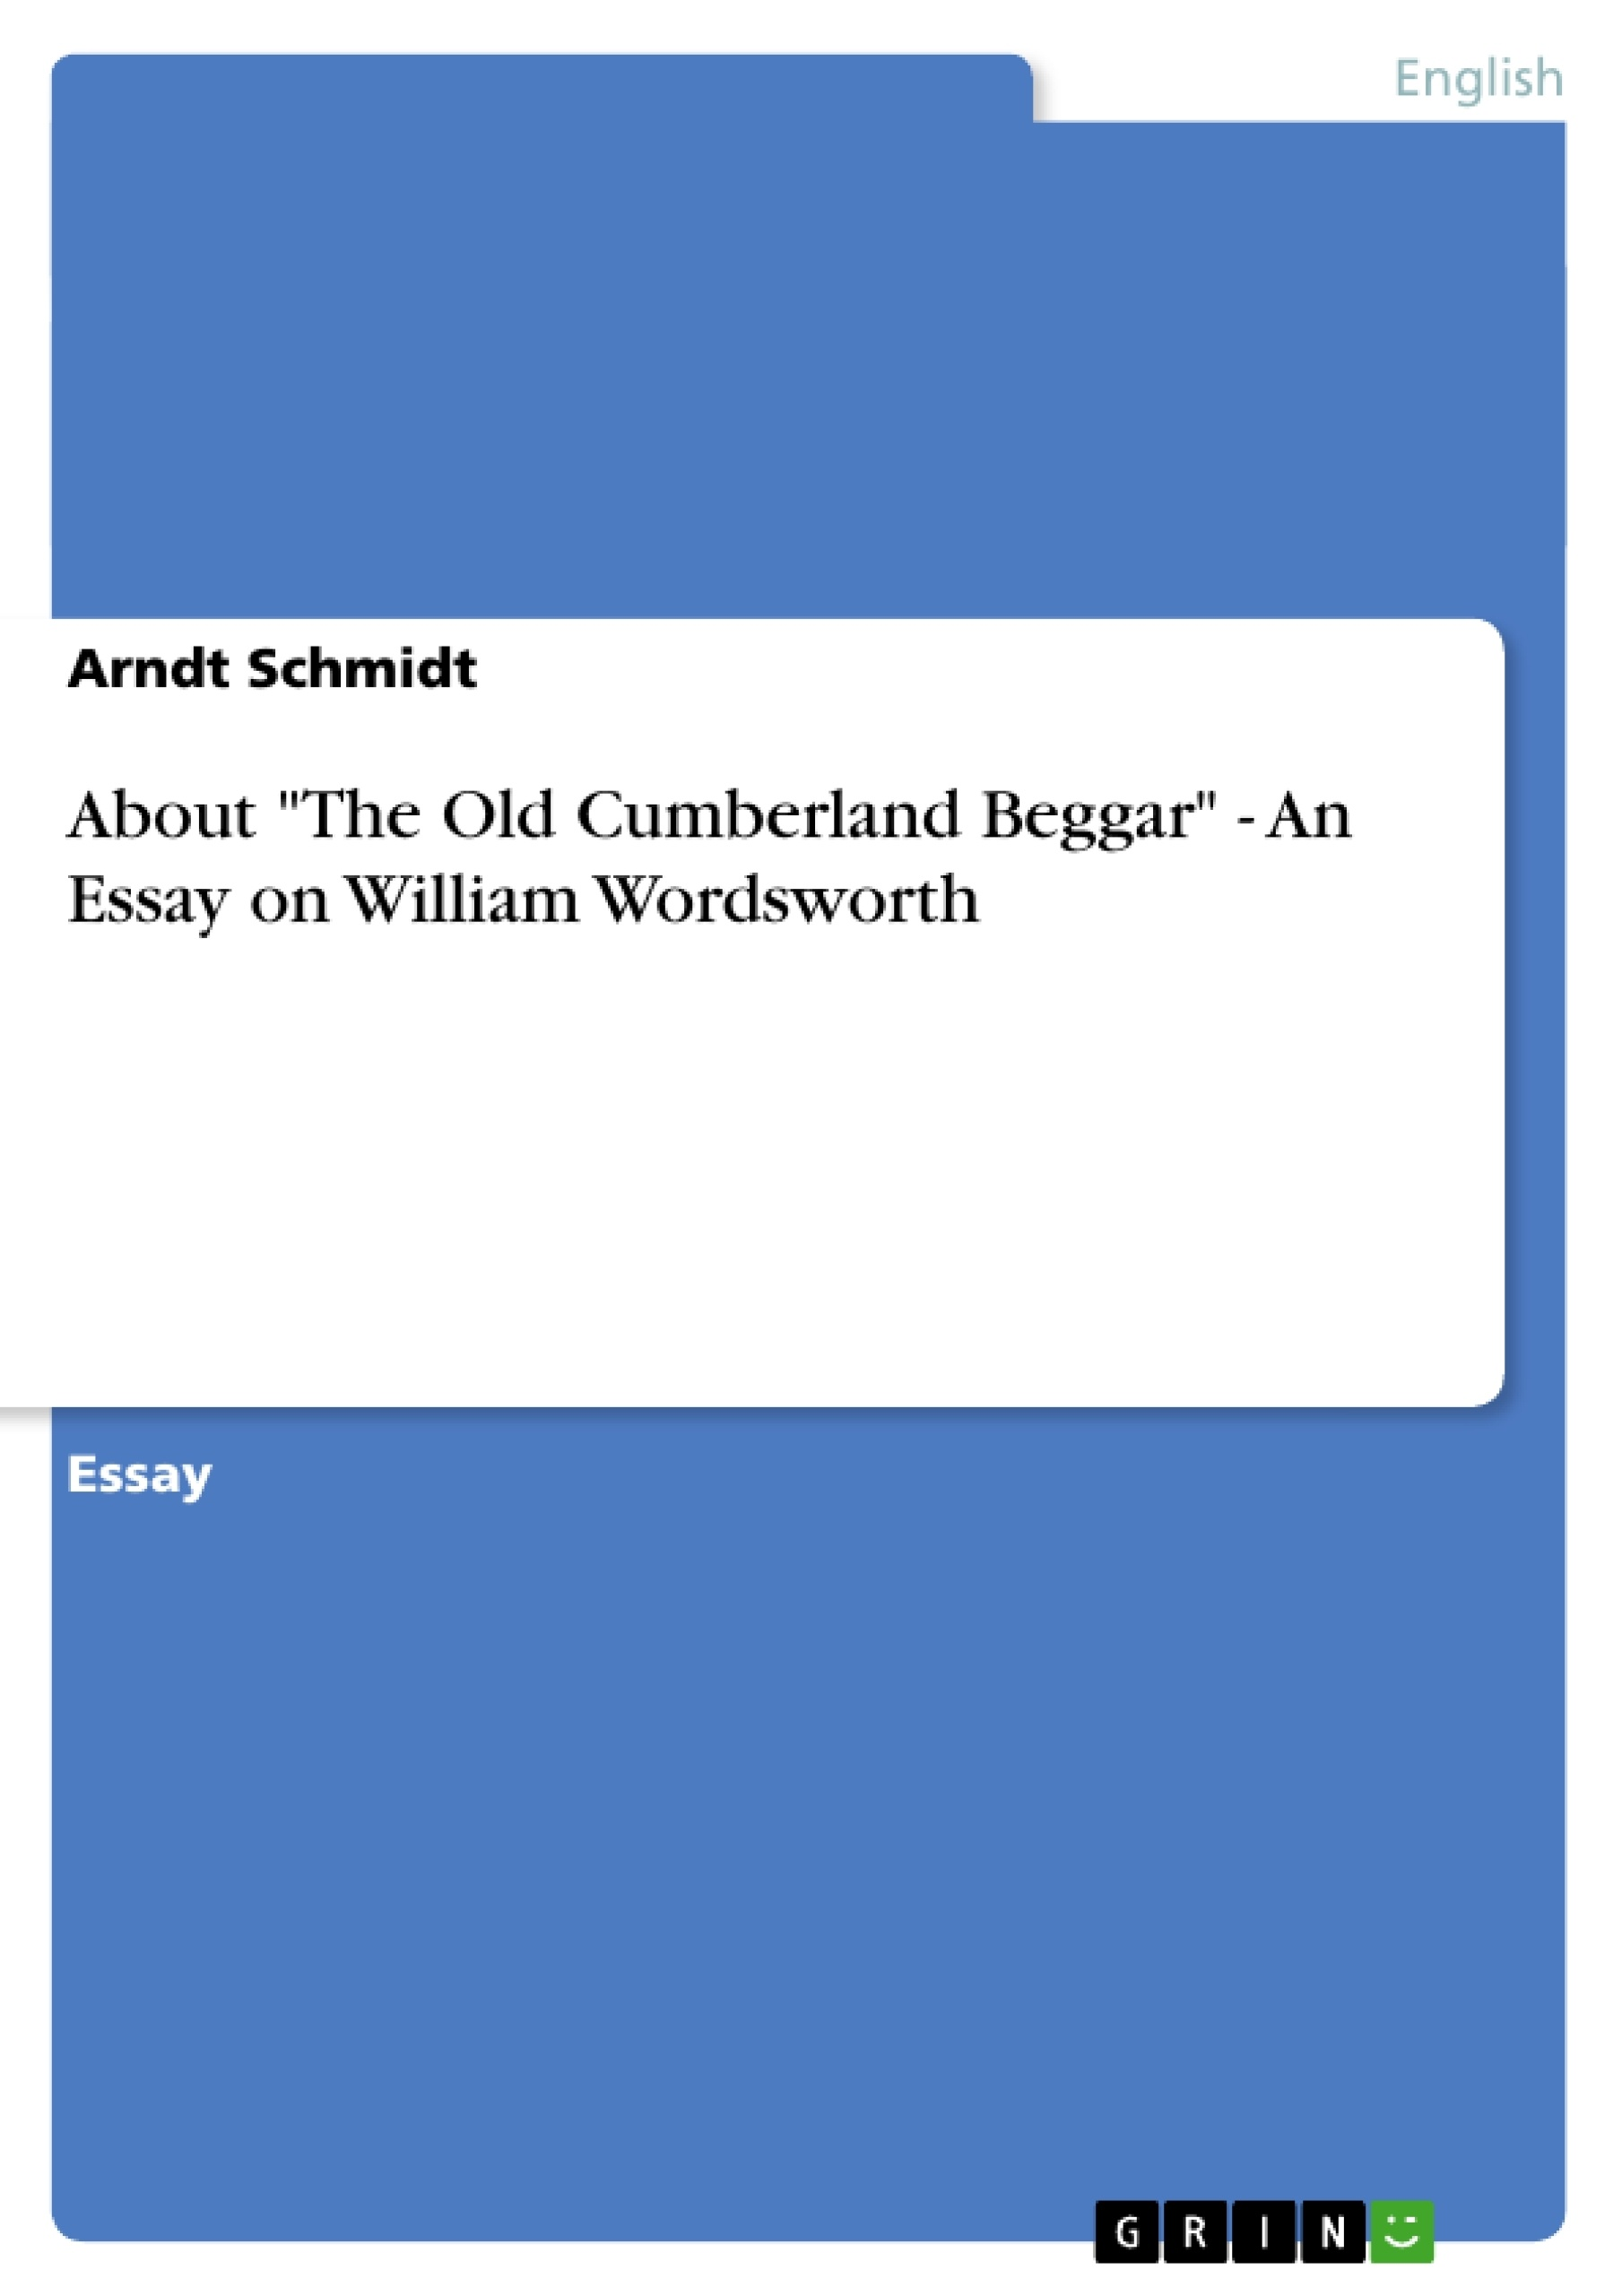 about the old cumberland beggar an essay on william wordsworth  upload your own papers earn money and win an iphone x